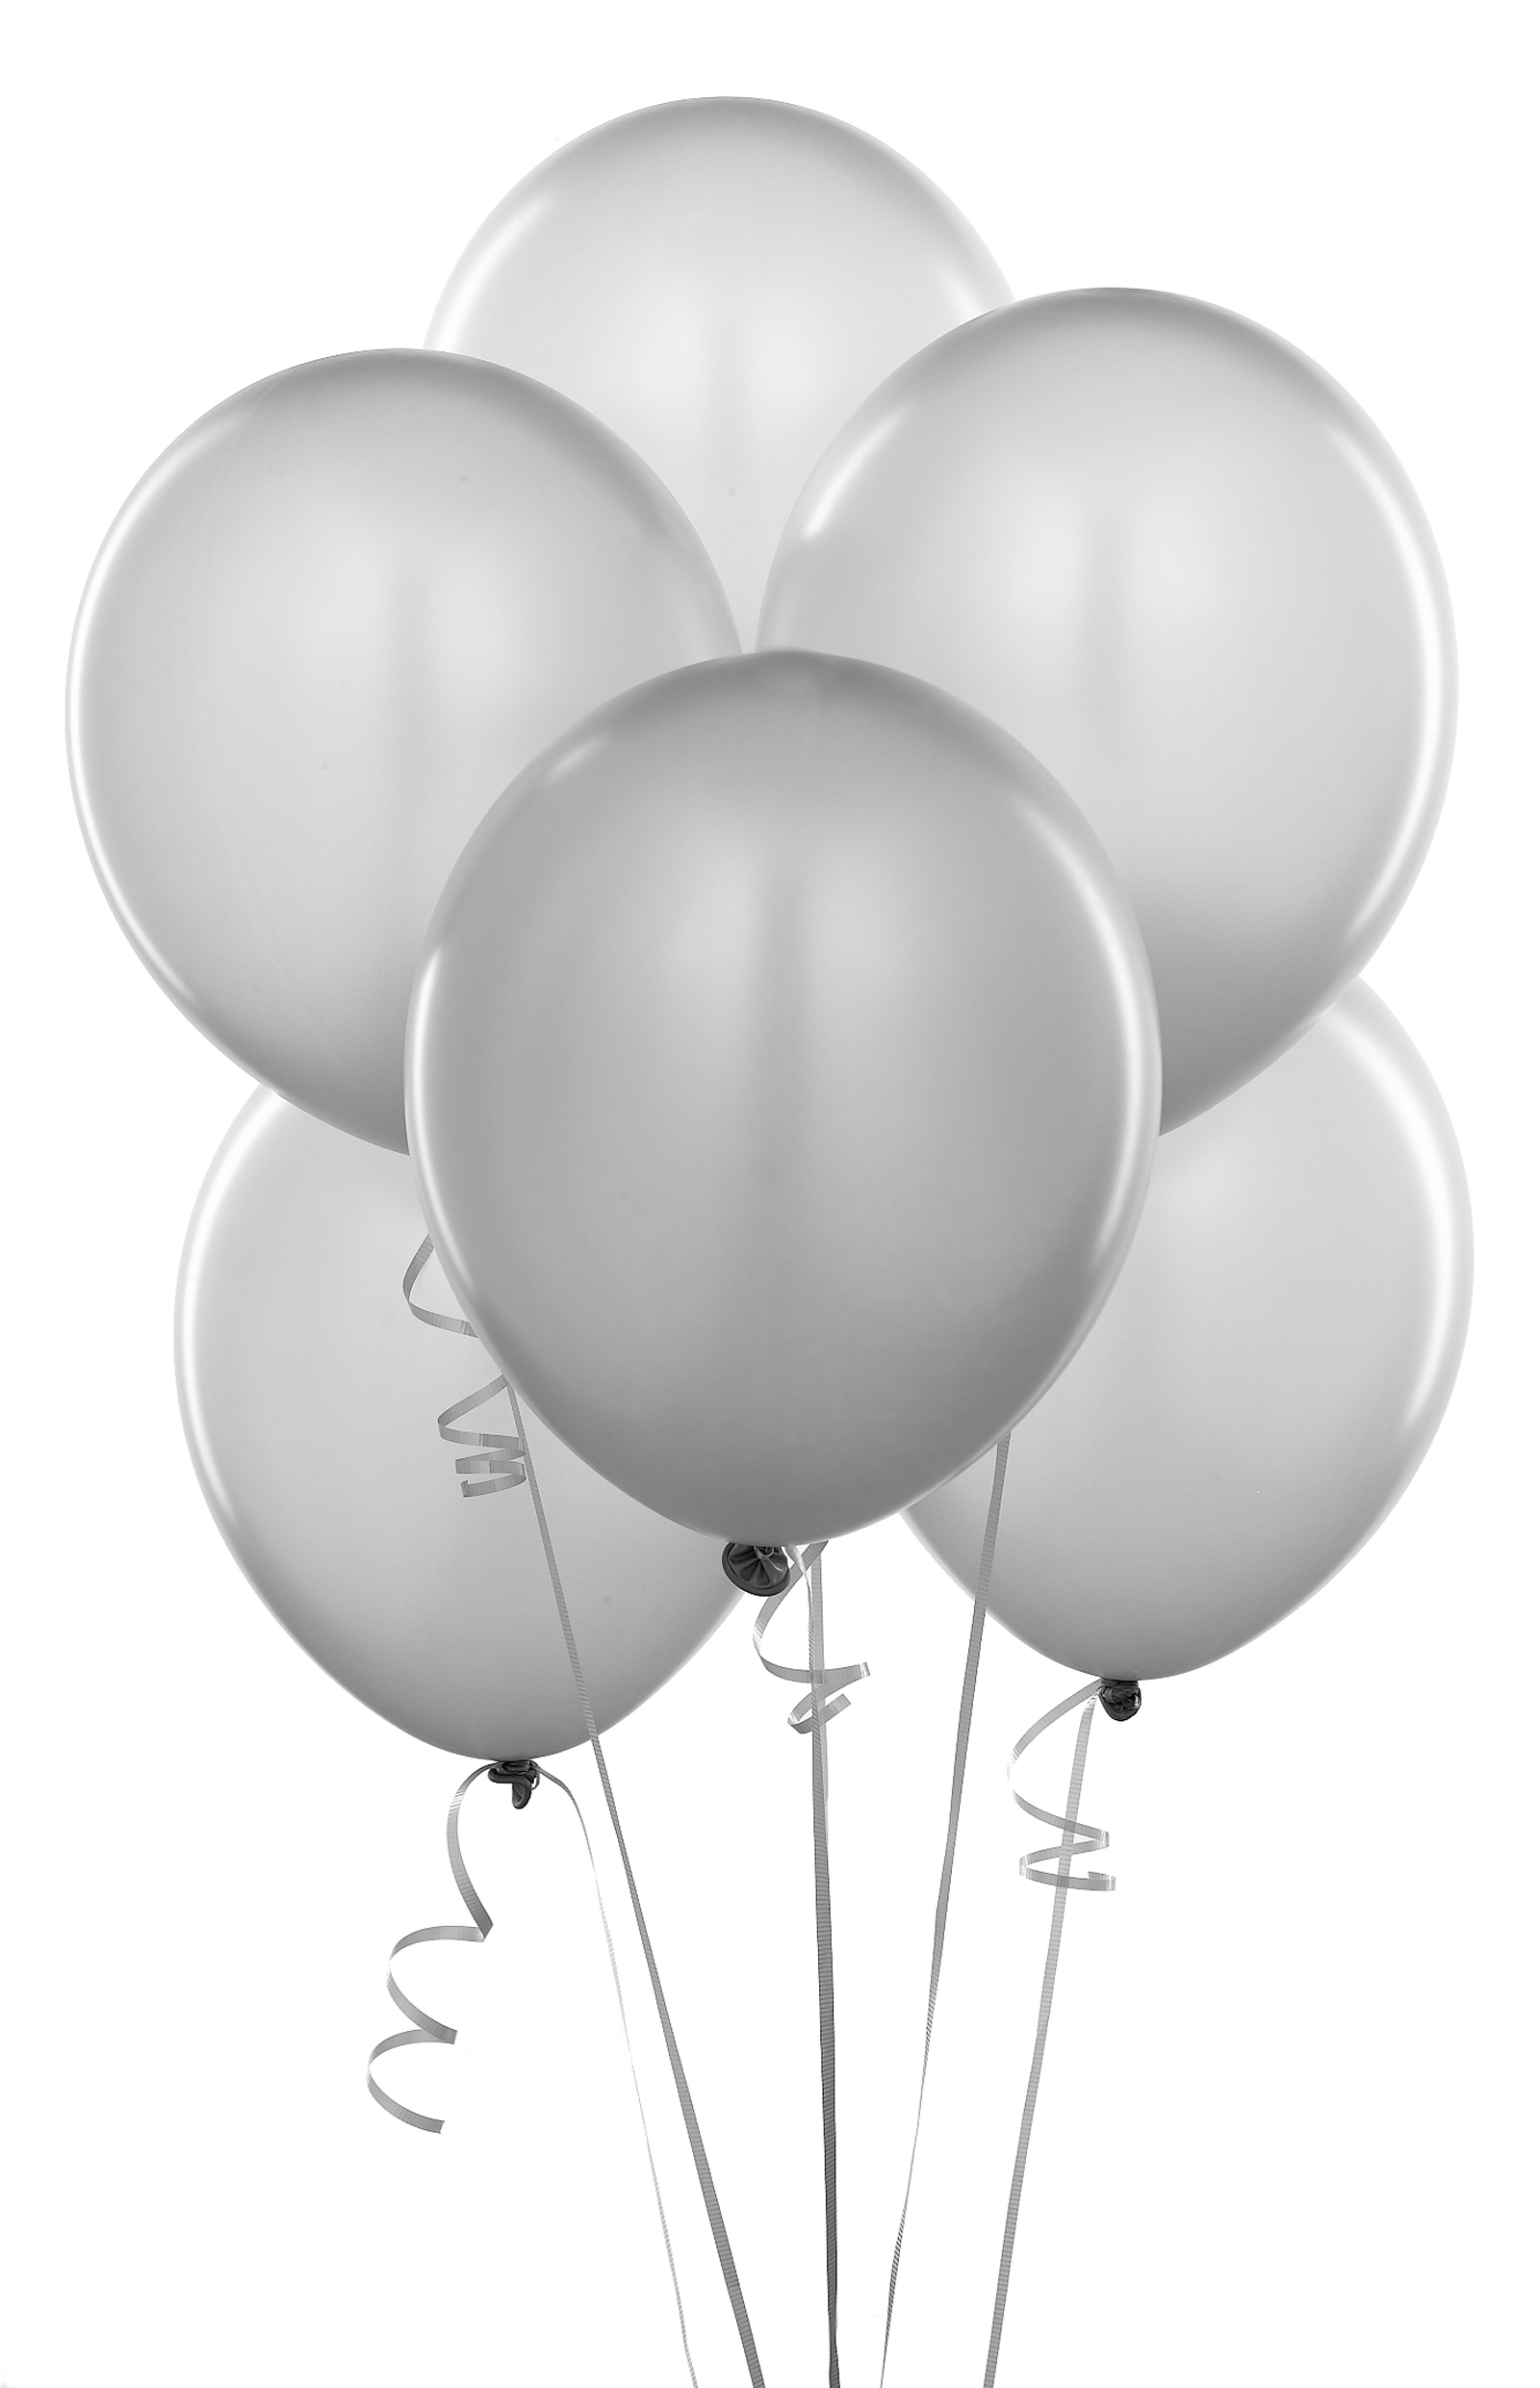 Black And White Party Balloons Clipart.